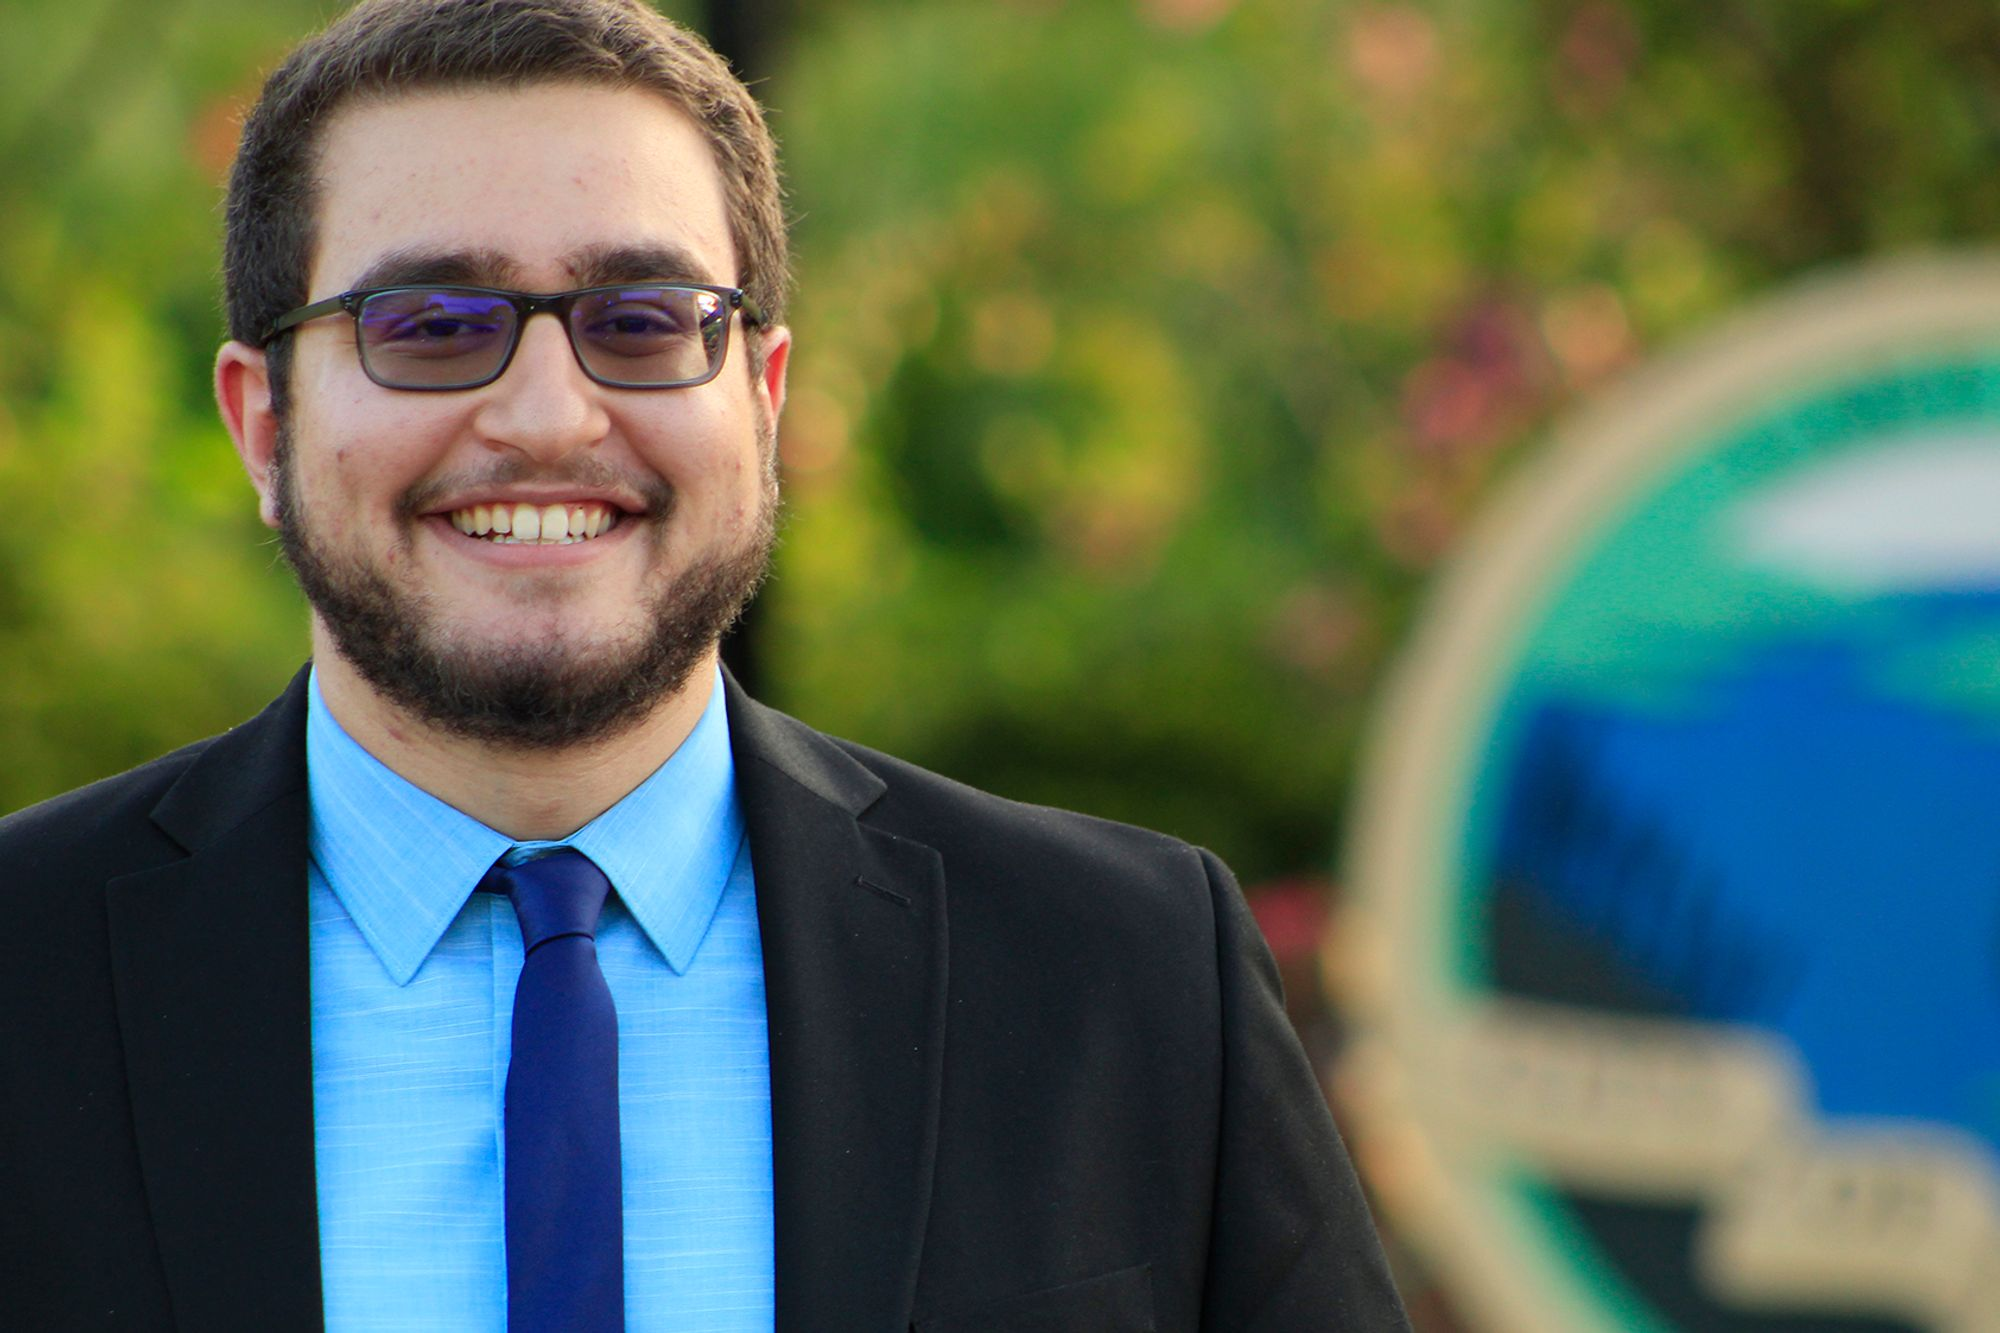 Omar Sadek '19 pictured in Lake Mary, a suburb of Orlando where he ran for city commission.